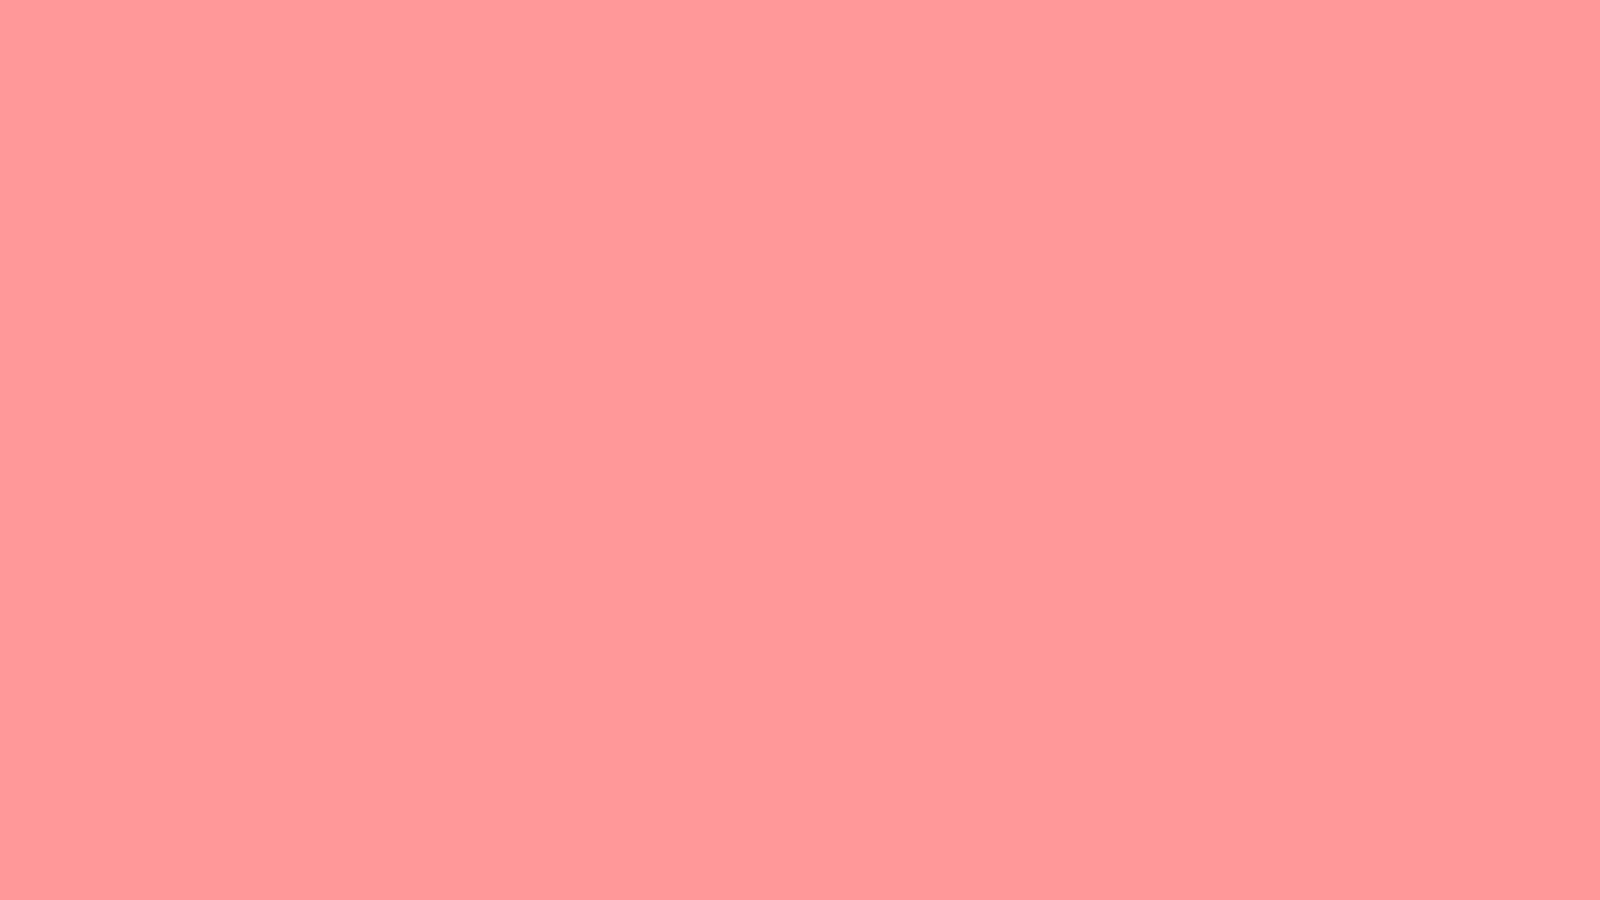 1600x900 Light Salmon Pink Solid Color Background